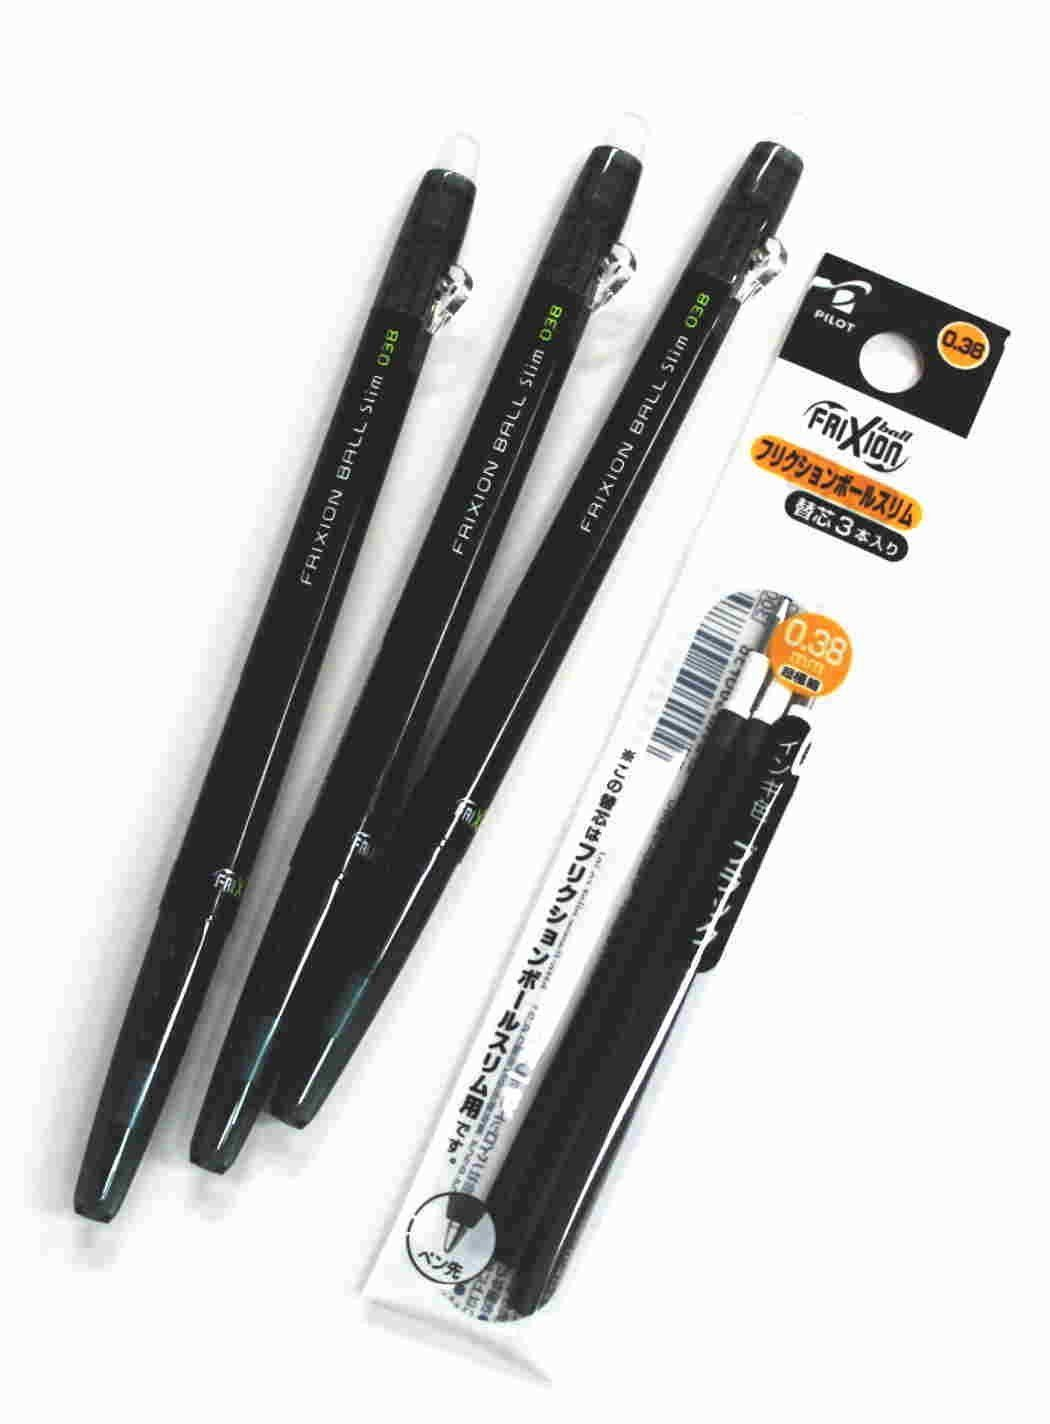 Amazon.com: Pilot Frixion Ball slim Retractable Erasable Gel Ink Pens,fine Point, - 0.38 Mm - Black Ink- Value set of 3 & 3 Gel Ink Pen Refill Pack: Office Products